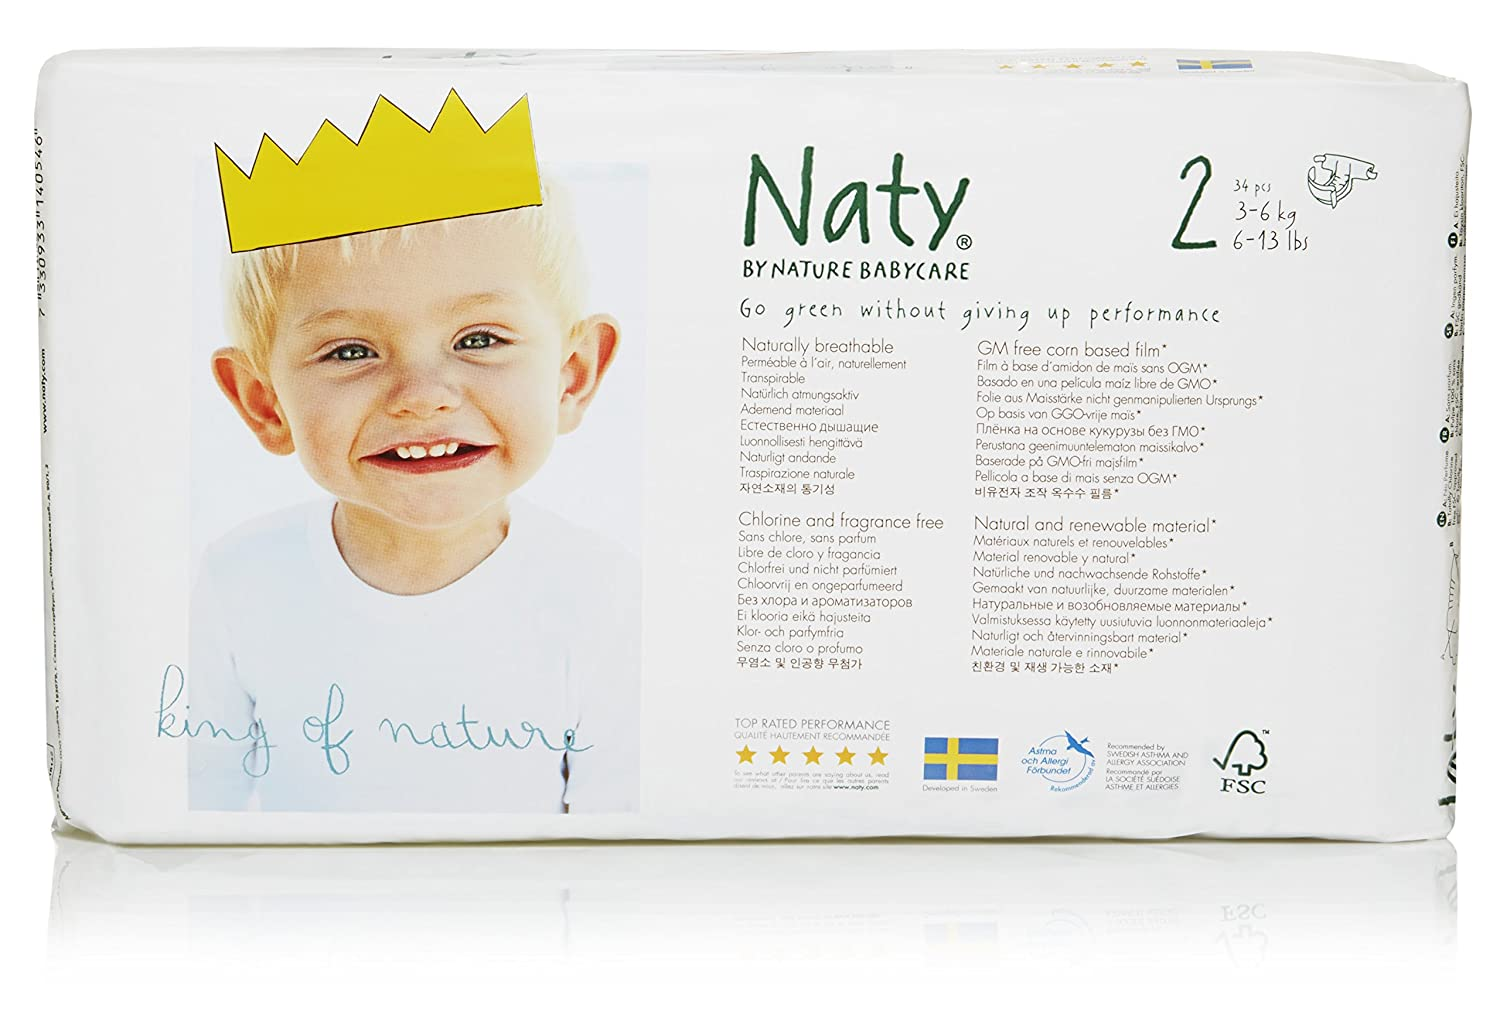 Amazon.com: Naty by Nature Babycare Eco-Friendly Premium Disposable Diapers for Sensitive Skin, Size 2, 4 packs of 34 (136 Count) (Chemical, chlorine, ...